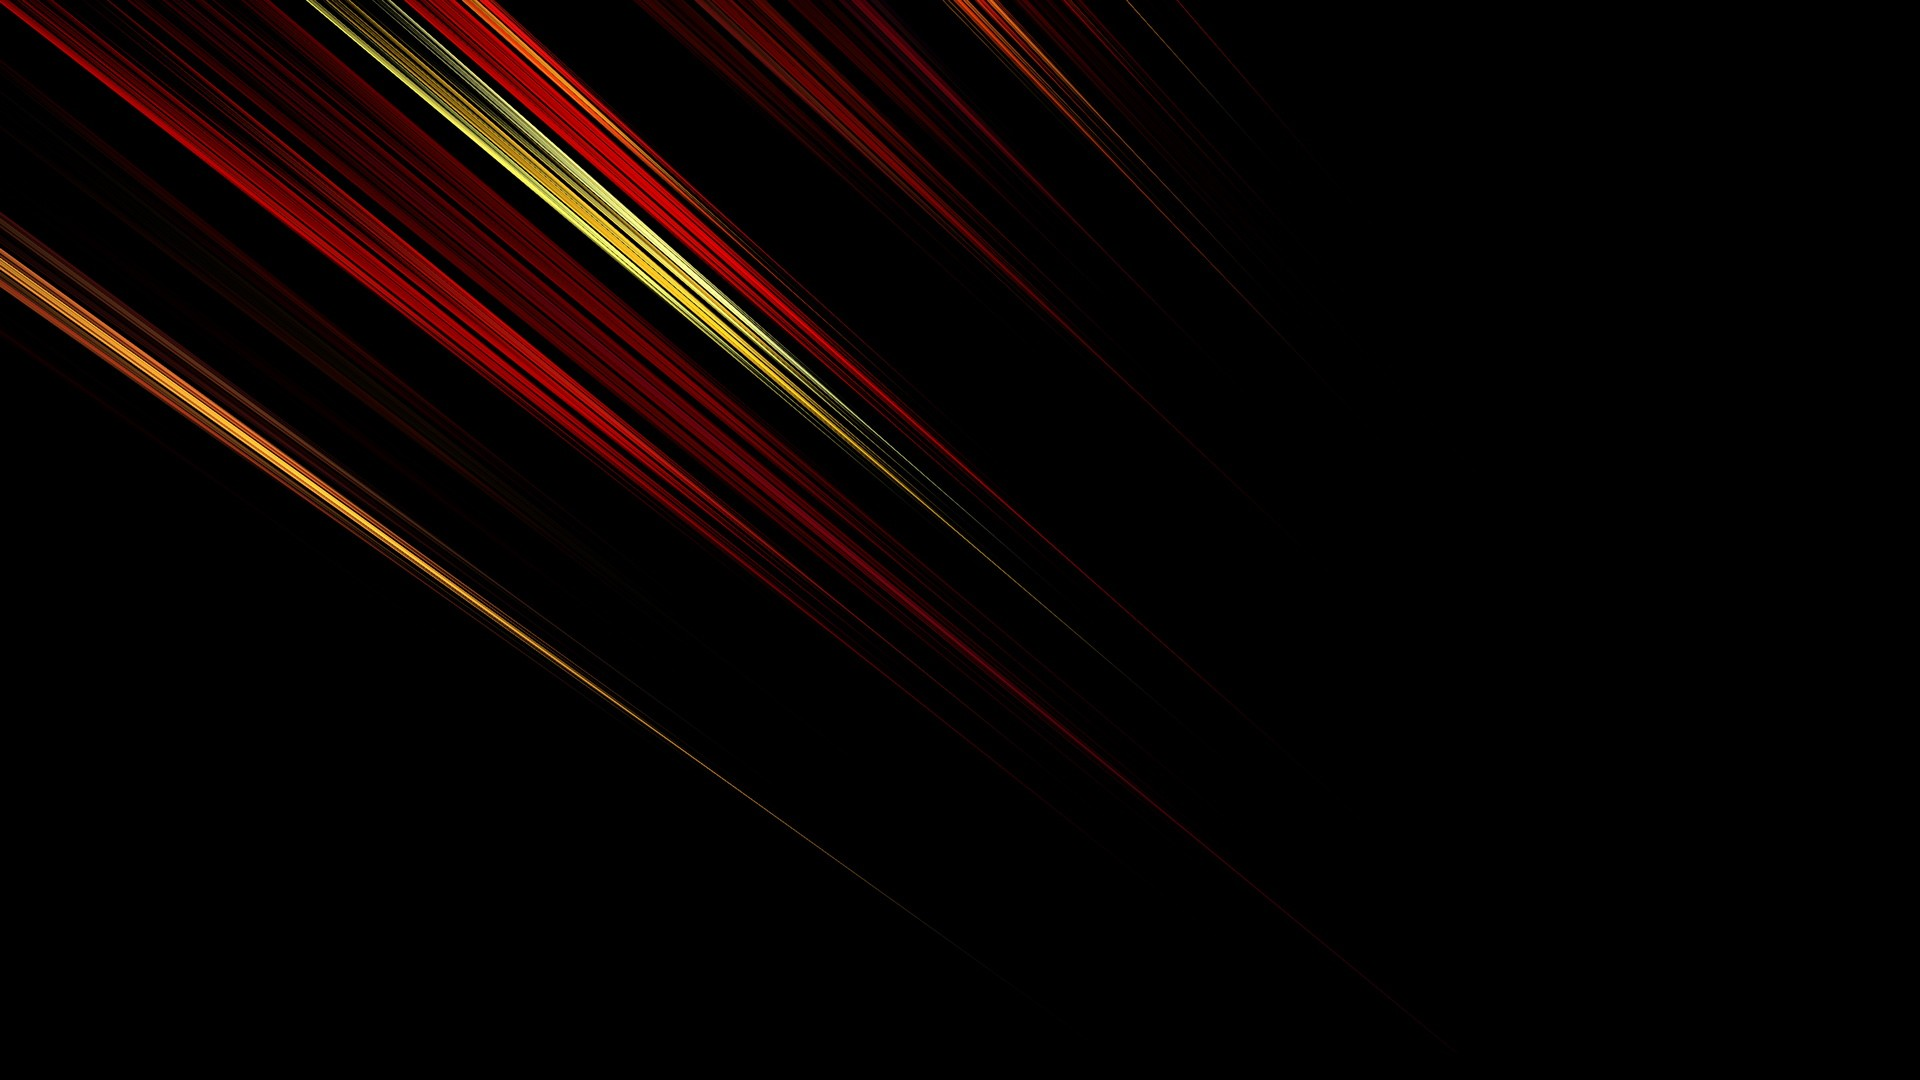 1920x1080 Red Orange And Yellow Diagonals Desktop Pc And